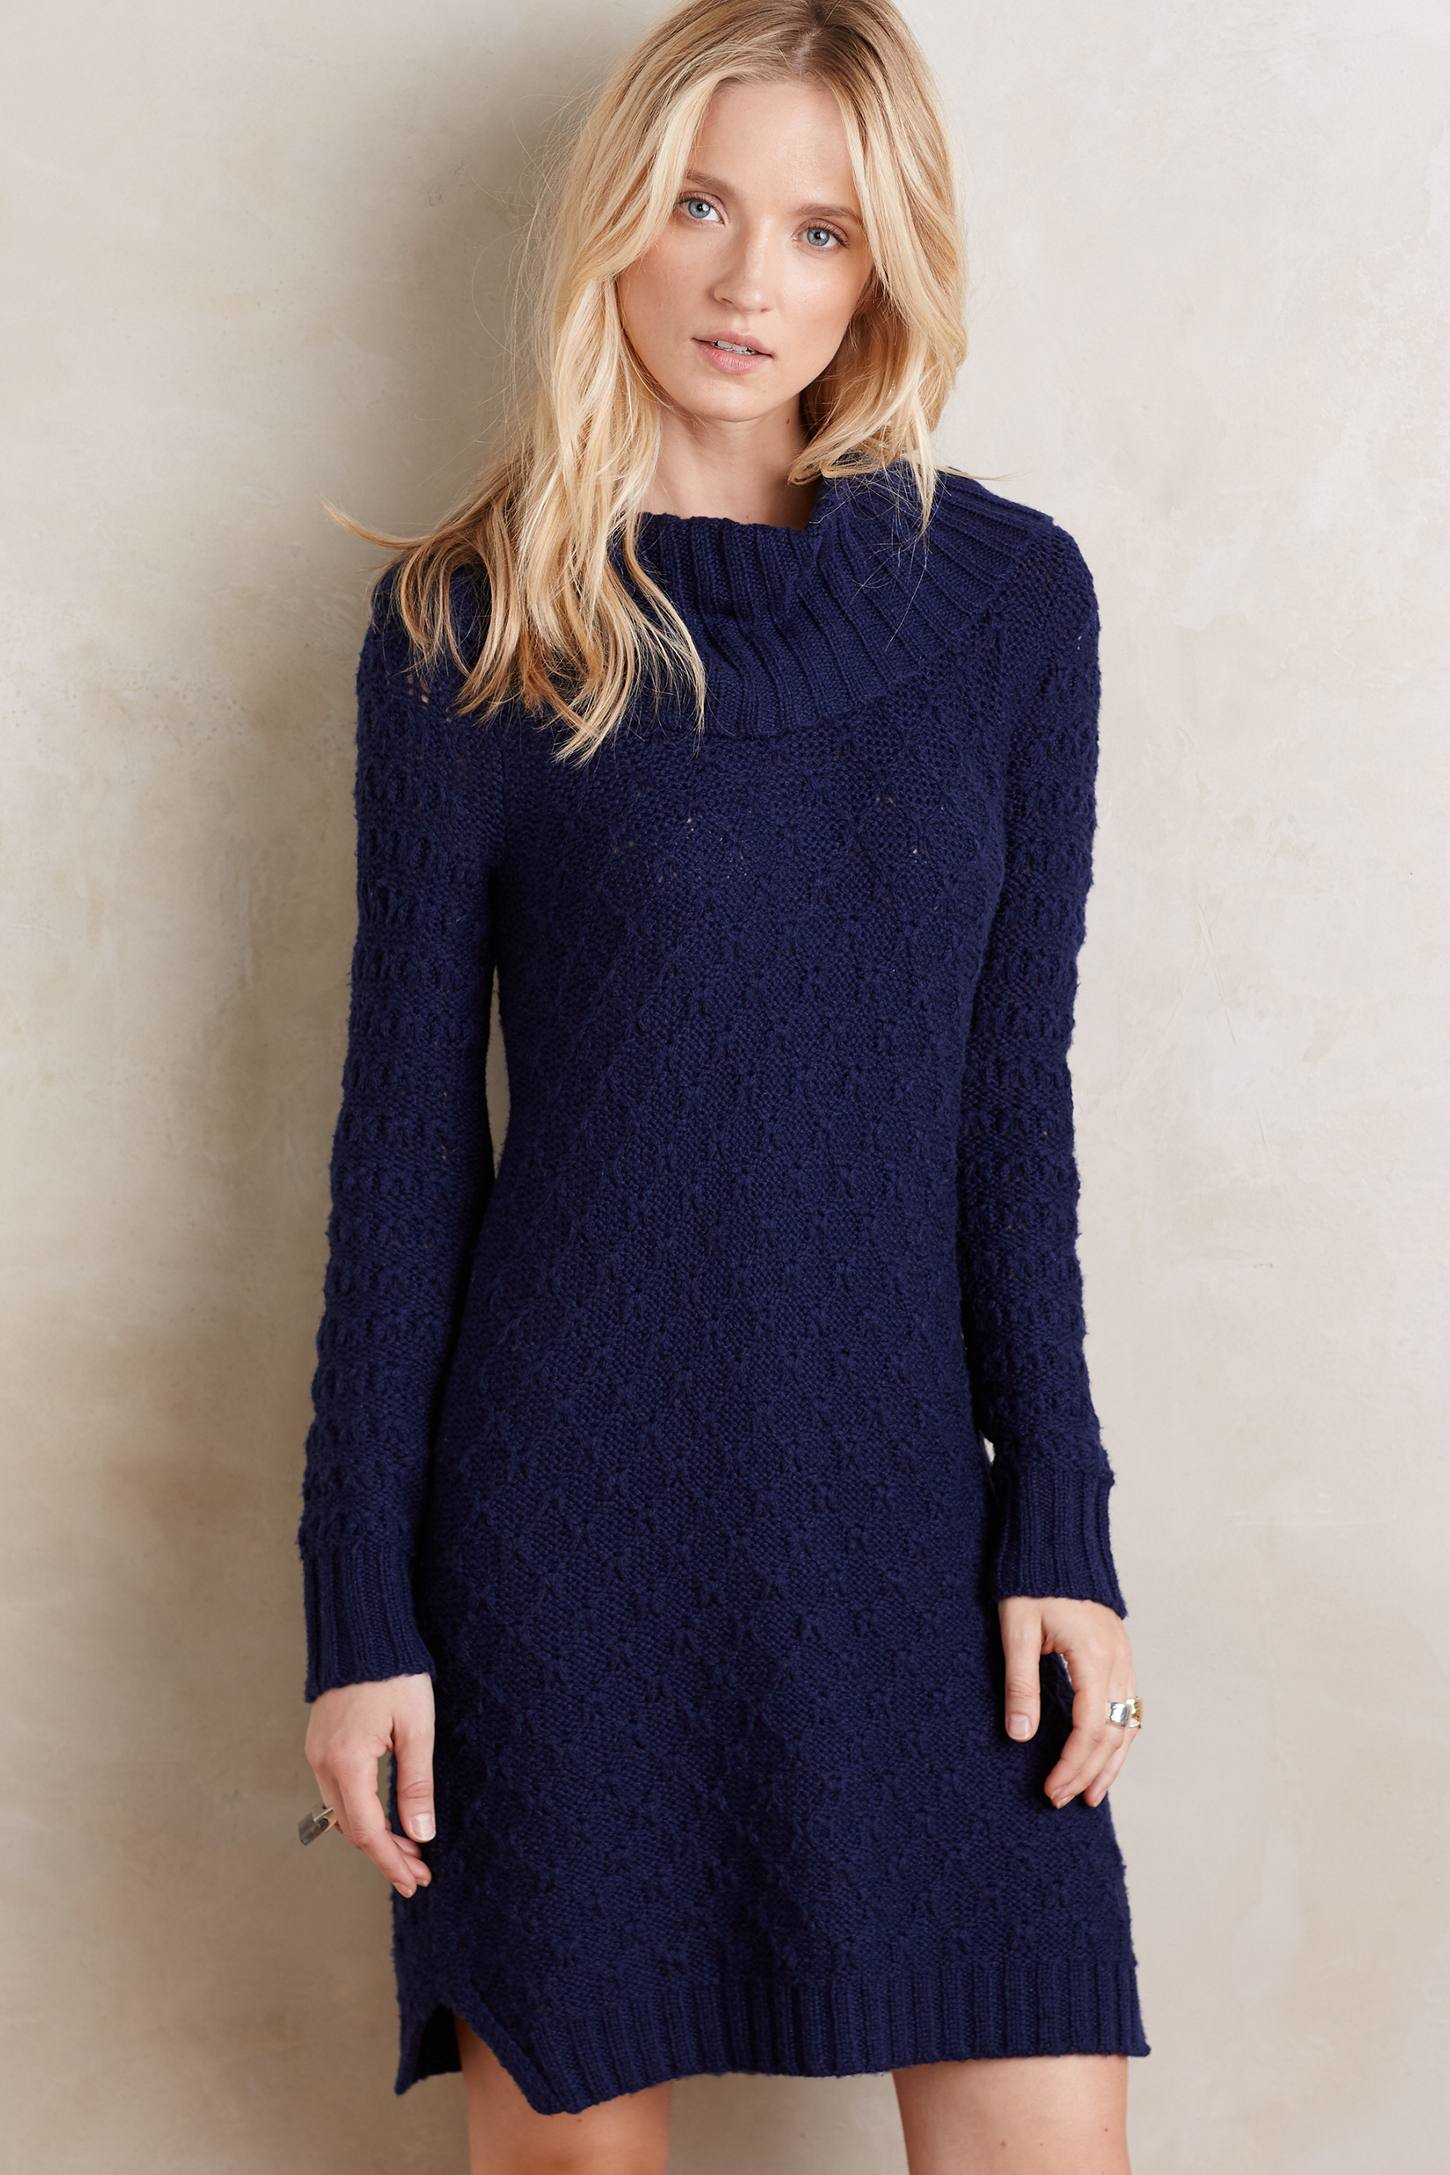 Sparrow Cowled Sweater Dress in Blue | Lyst